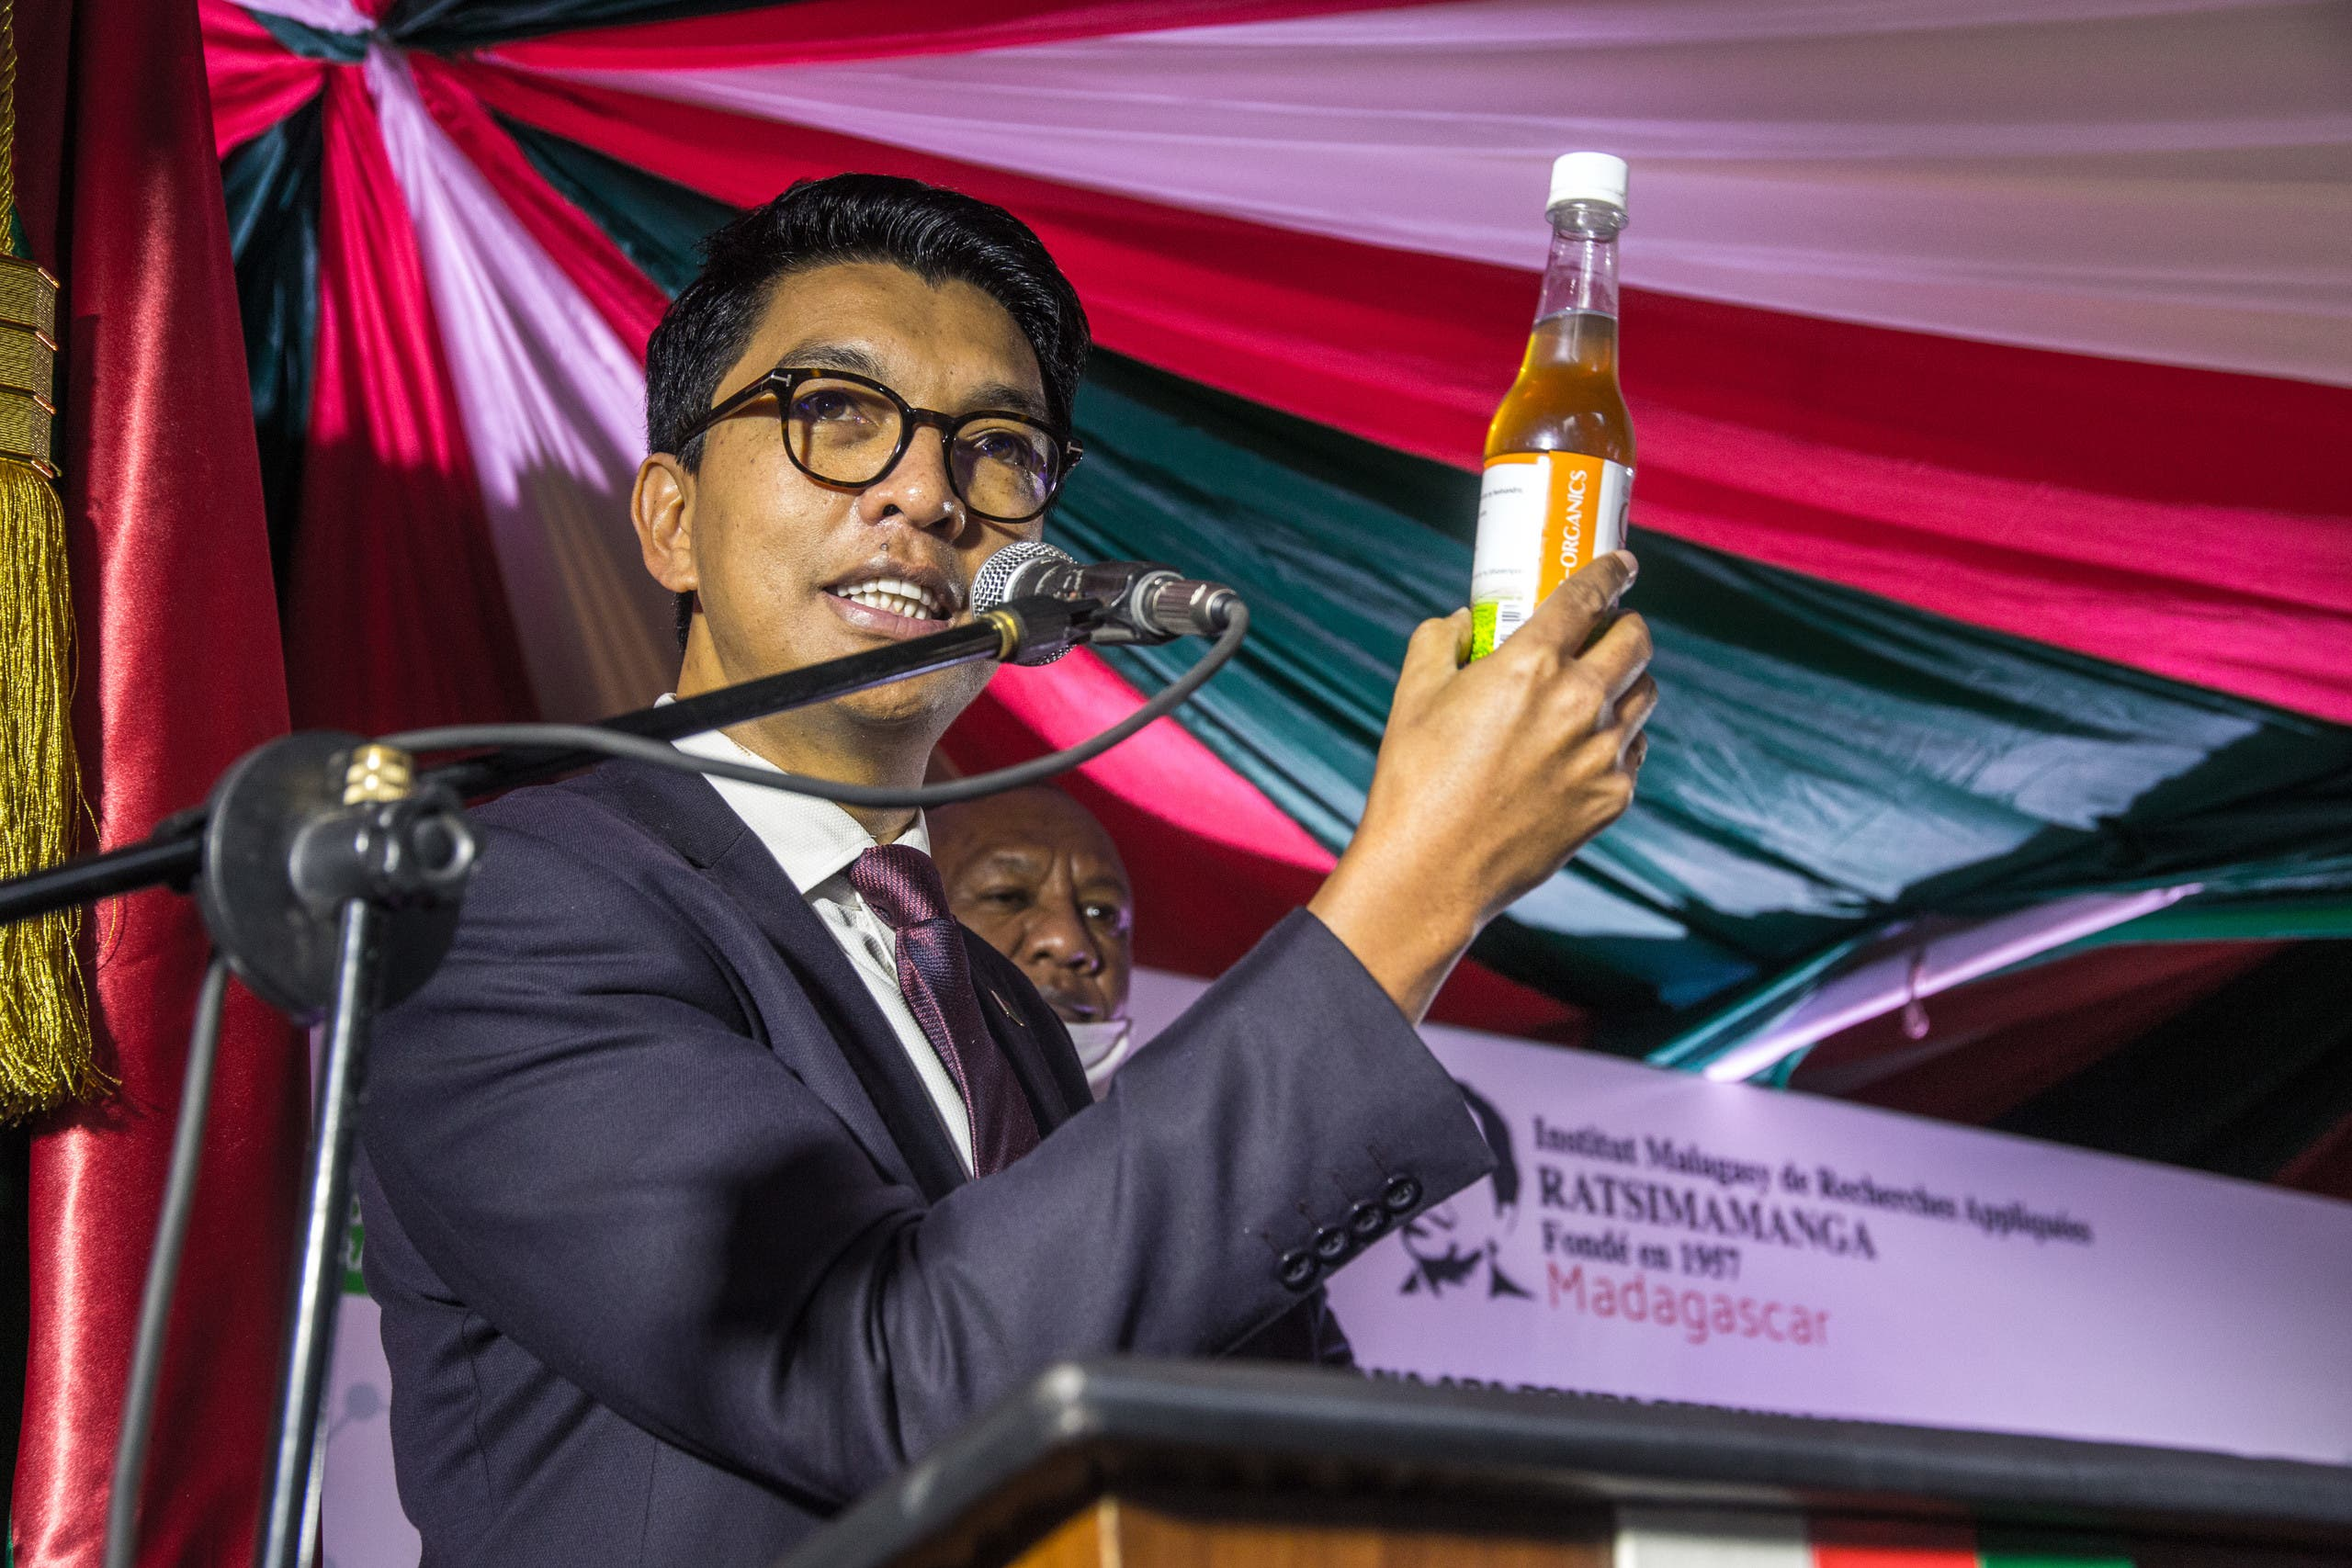 The President of Madagascar Andry Rajoelina attending a ceremony to launch Covid Organics, the country's 'cure' to the coronavirus. (File photo: AFP)